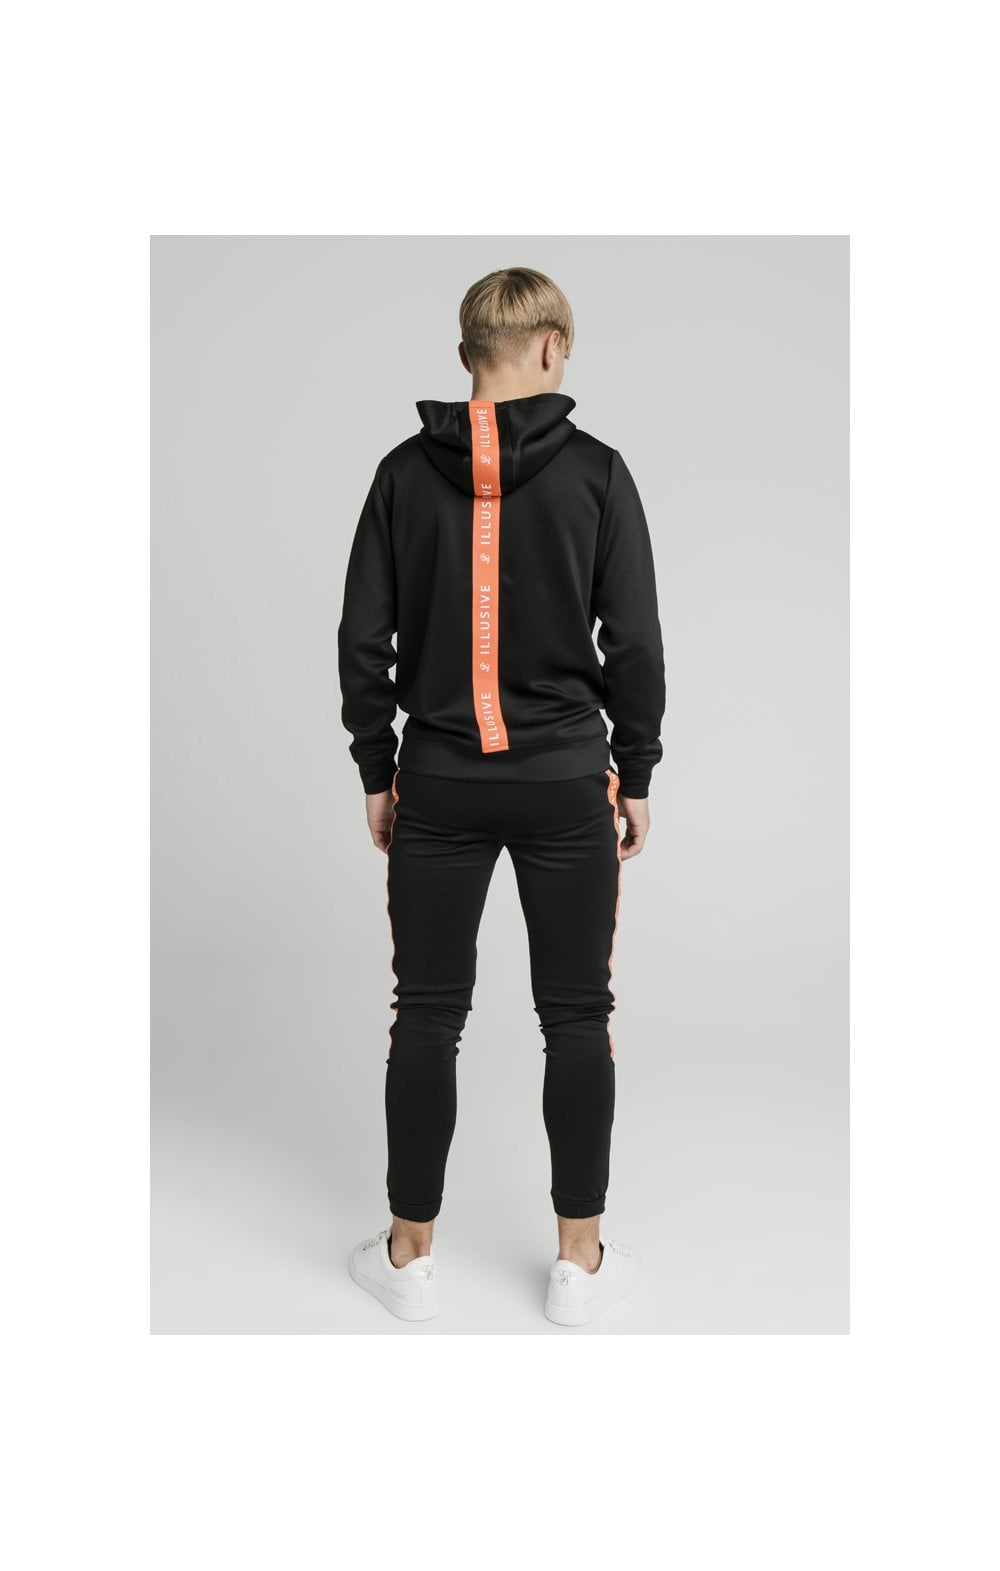 Illusive London Tape Joggers - Black (7)